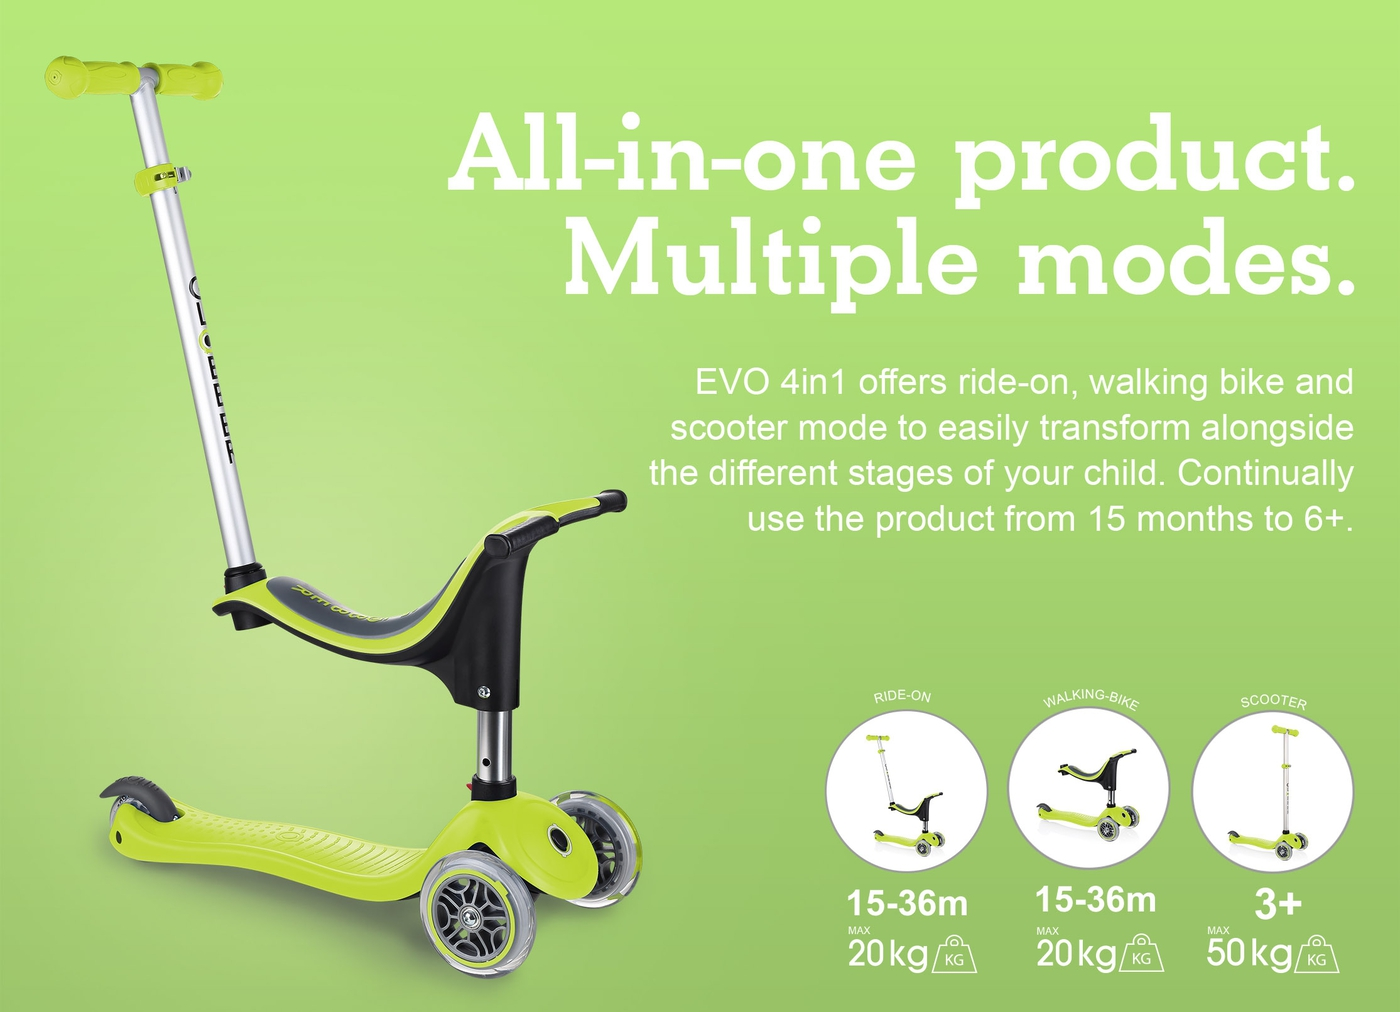 All-in-one product. Multiple modes.  EVO 4in1 offers ride-on, walking bike and scooter mode to easily transform alongside the different stages of your child. Continually use the product from 15 months to 6+.